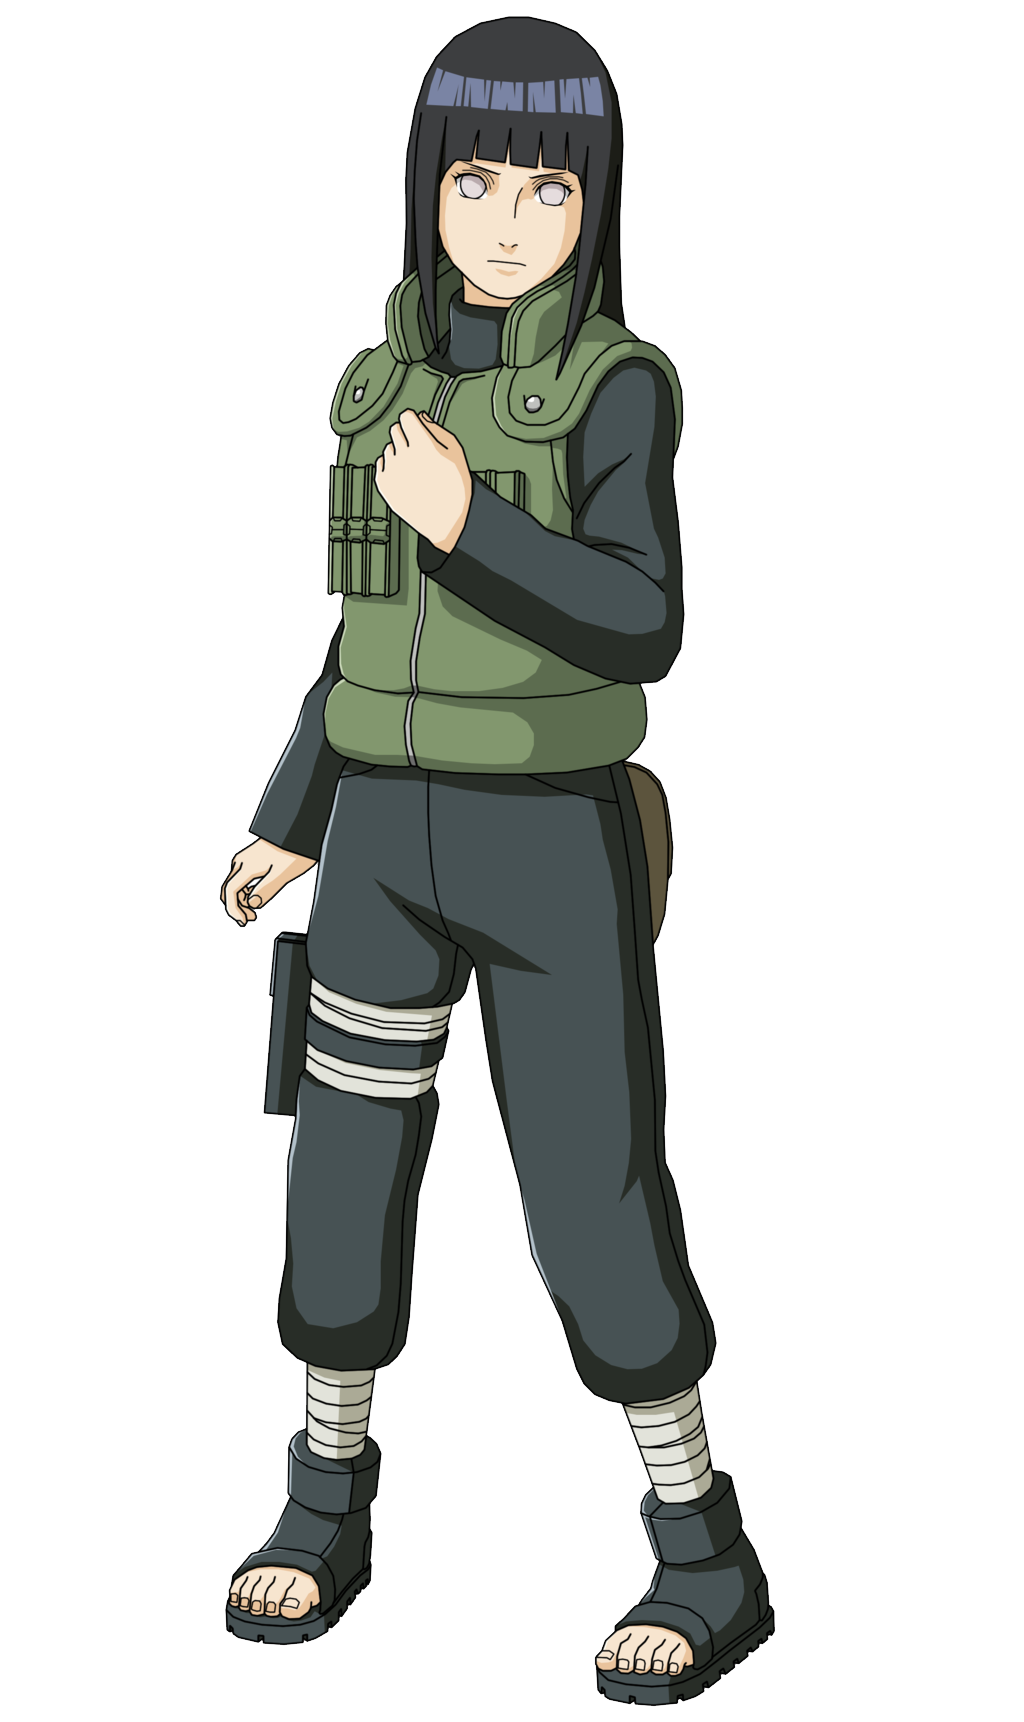 Image Hinata Hyga Allied Shinobi Forcespng Narutopedia FANDOM powered by Wikia